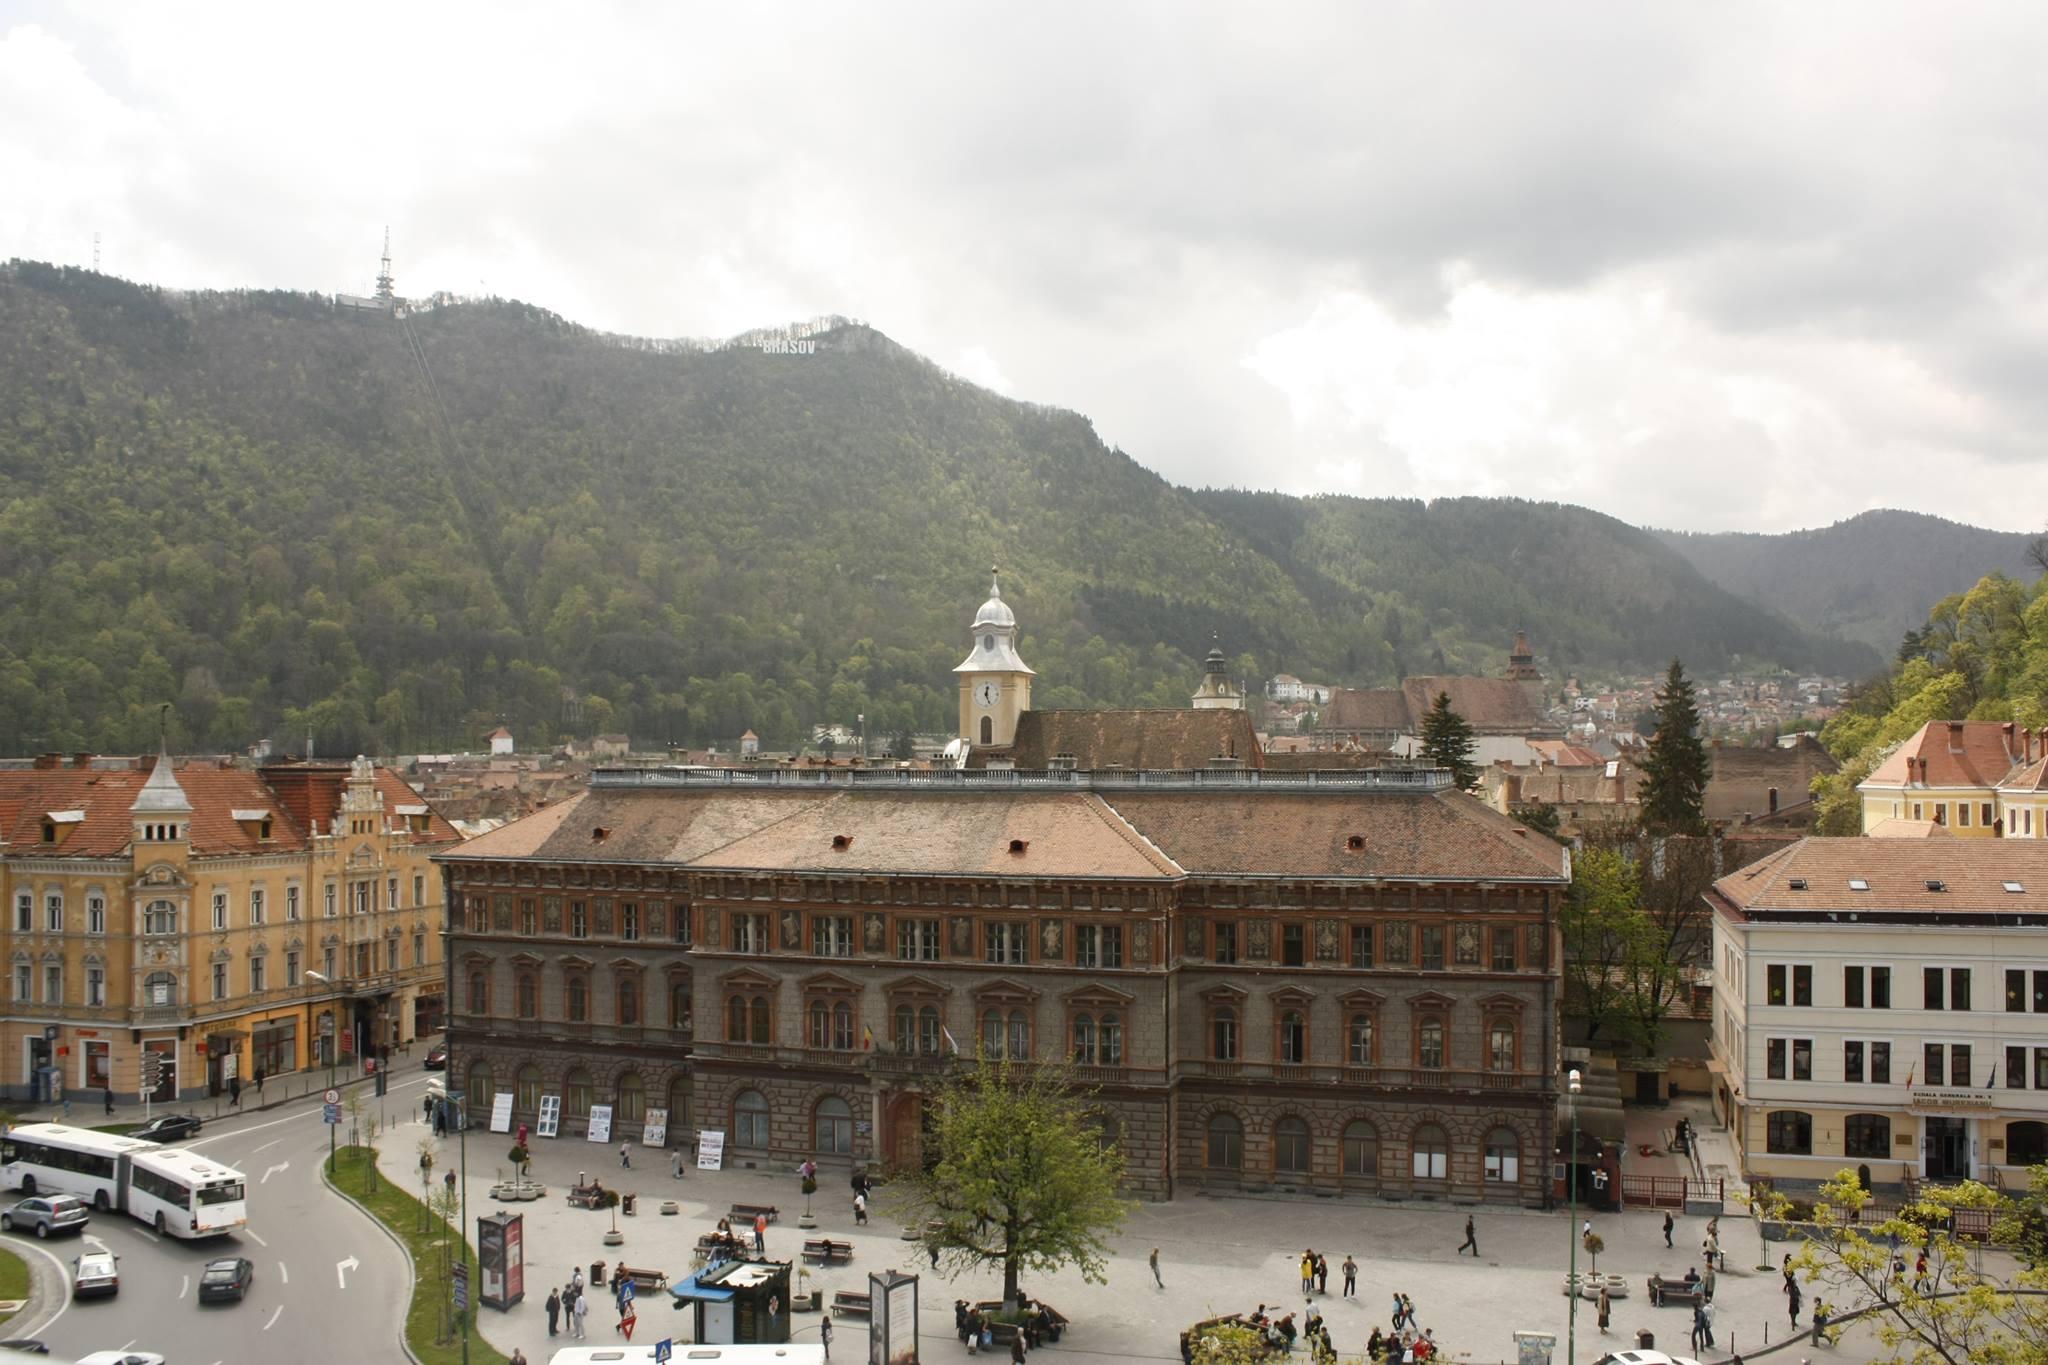 Transilvania University of Brasov – TUB Campus